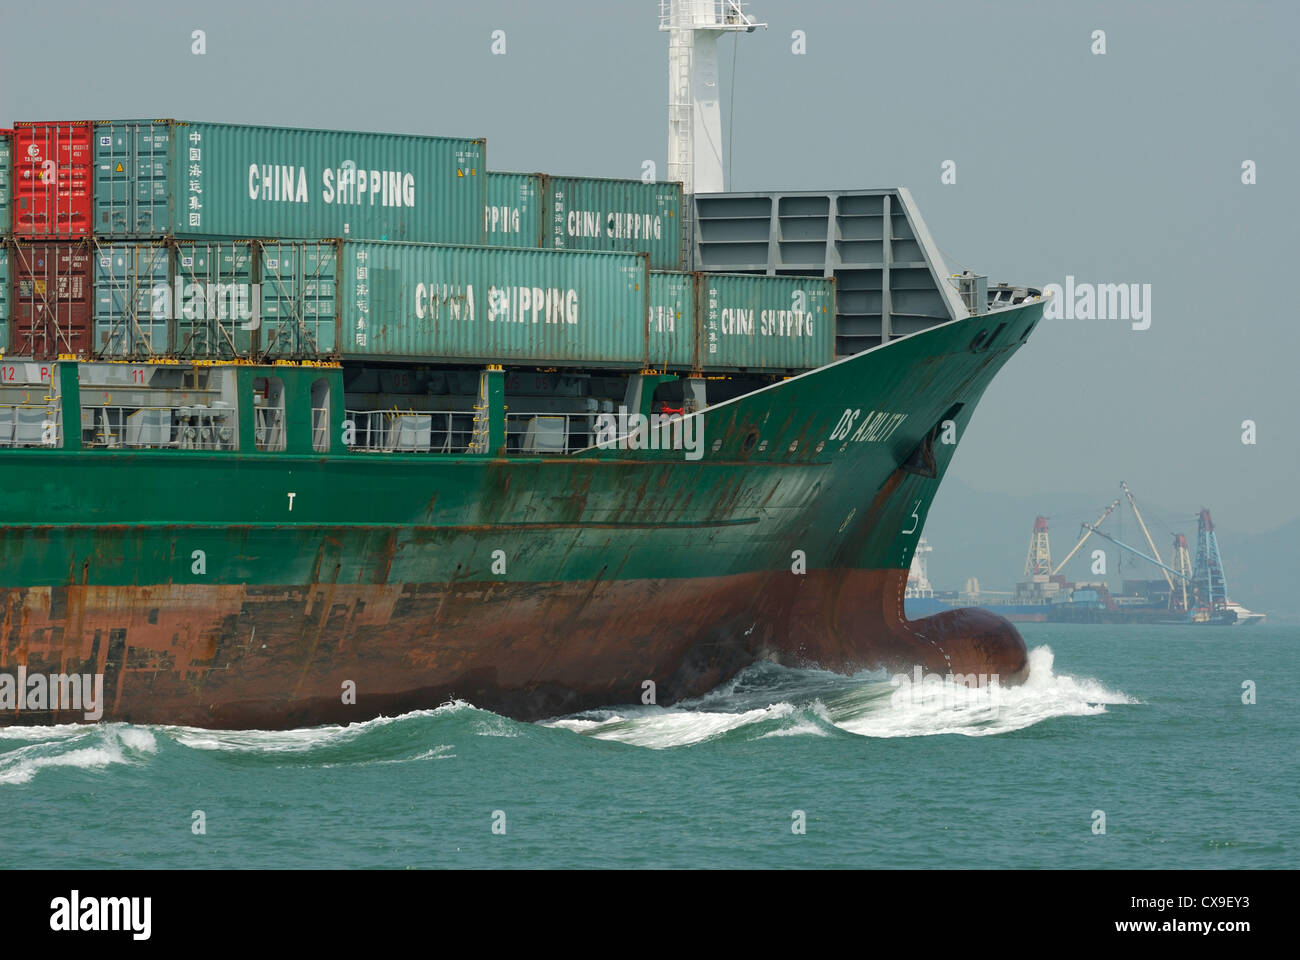 Portside bow of freighter traveling in the West Lamma Channel of Hong Kong, China. Stock Photo